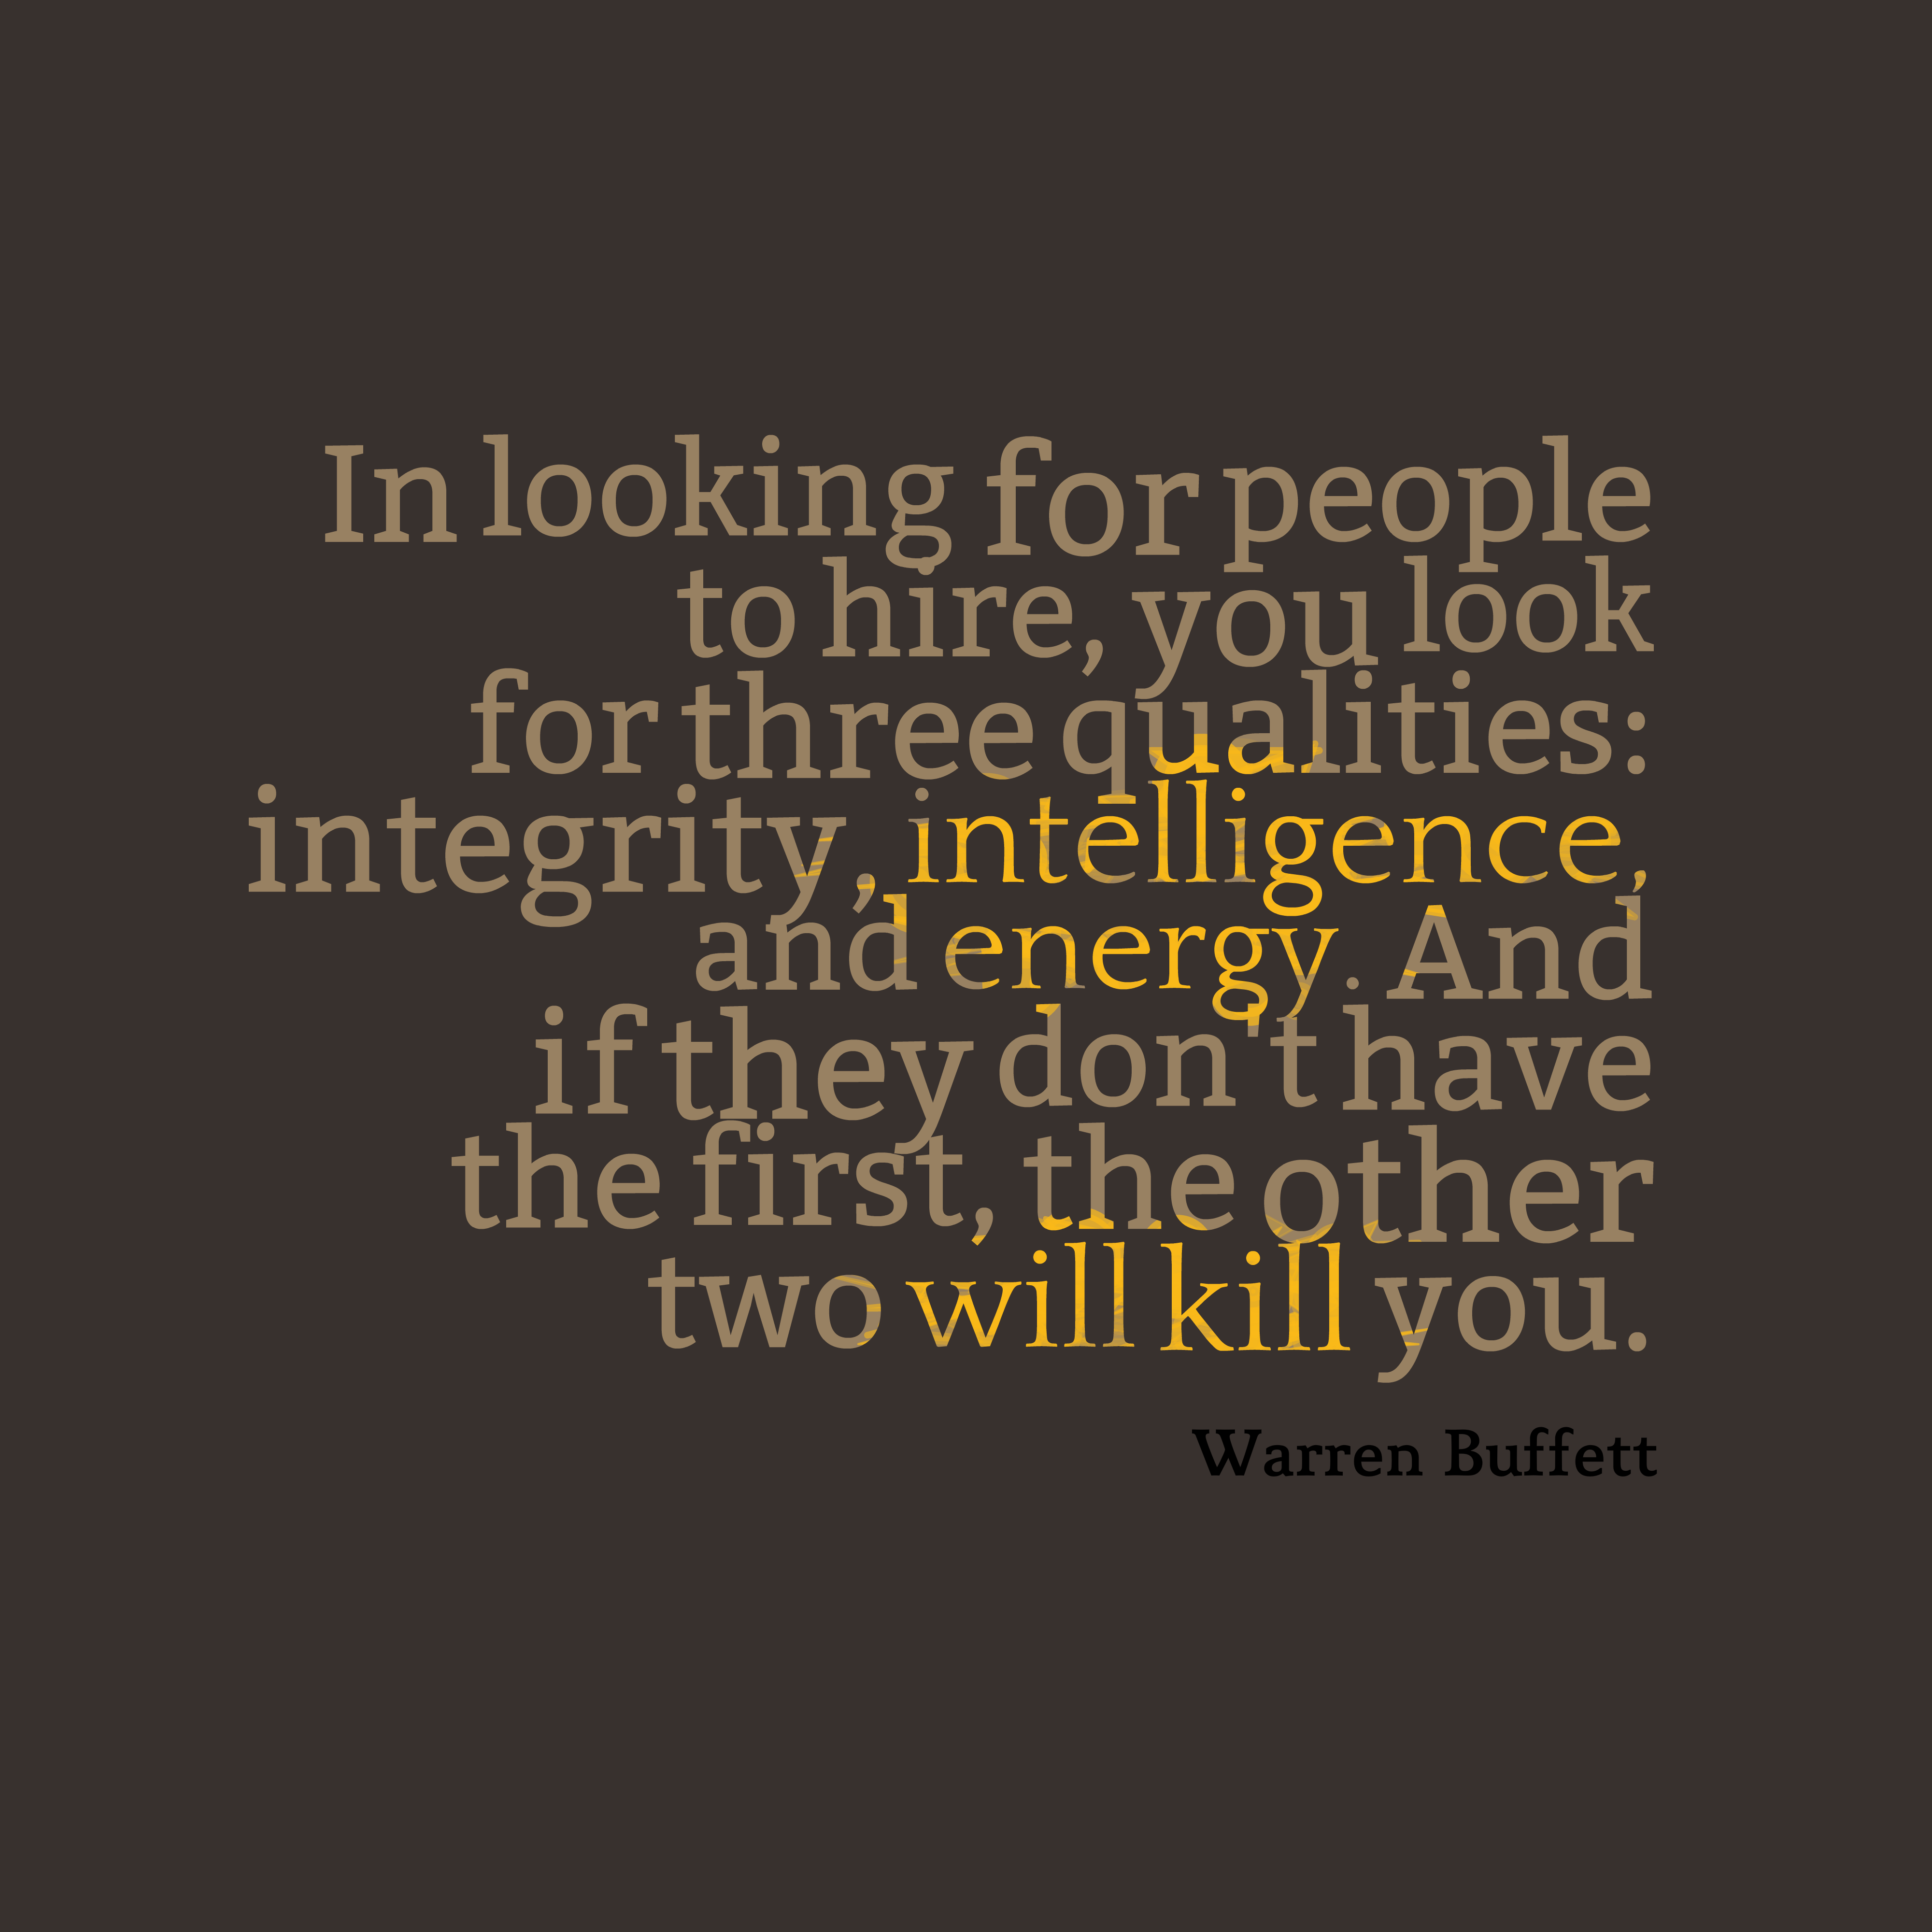 Quotes About Integrity | Warren Buffett Quote About Integrity